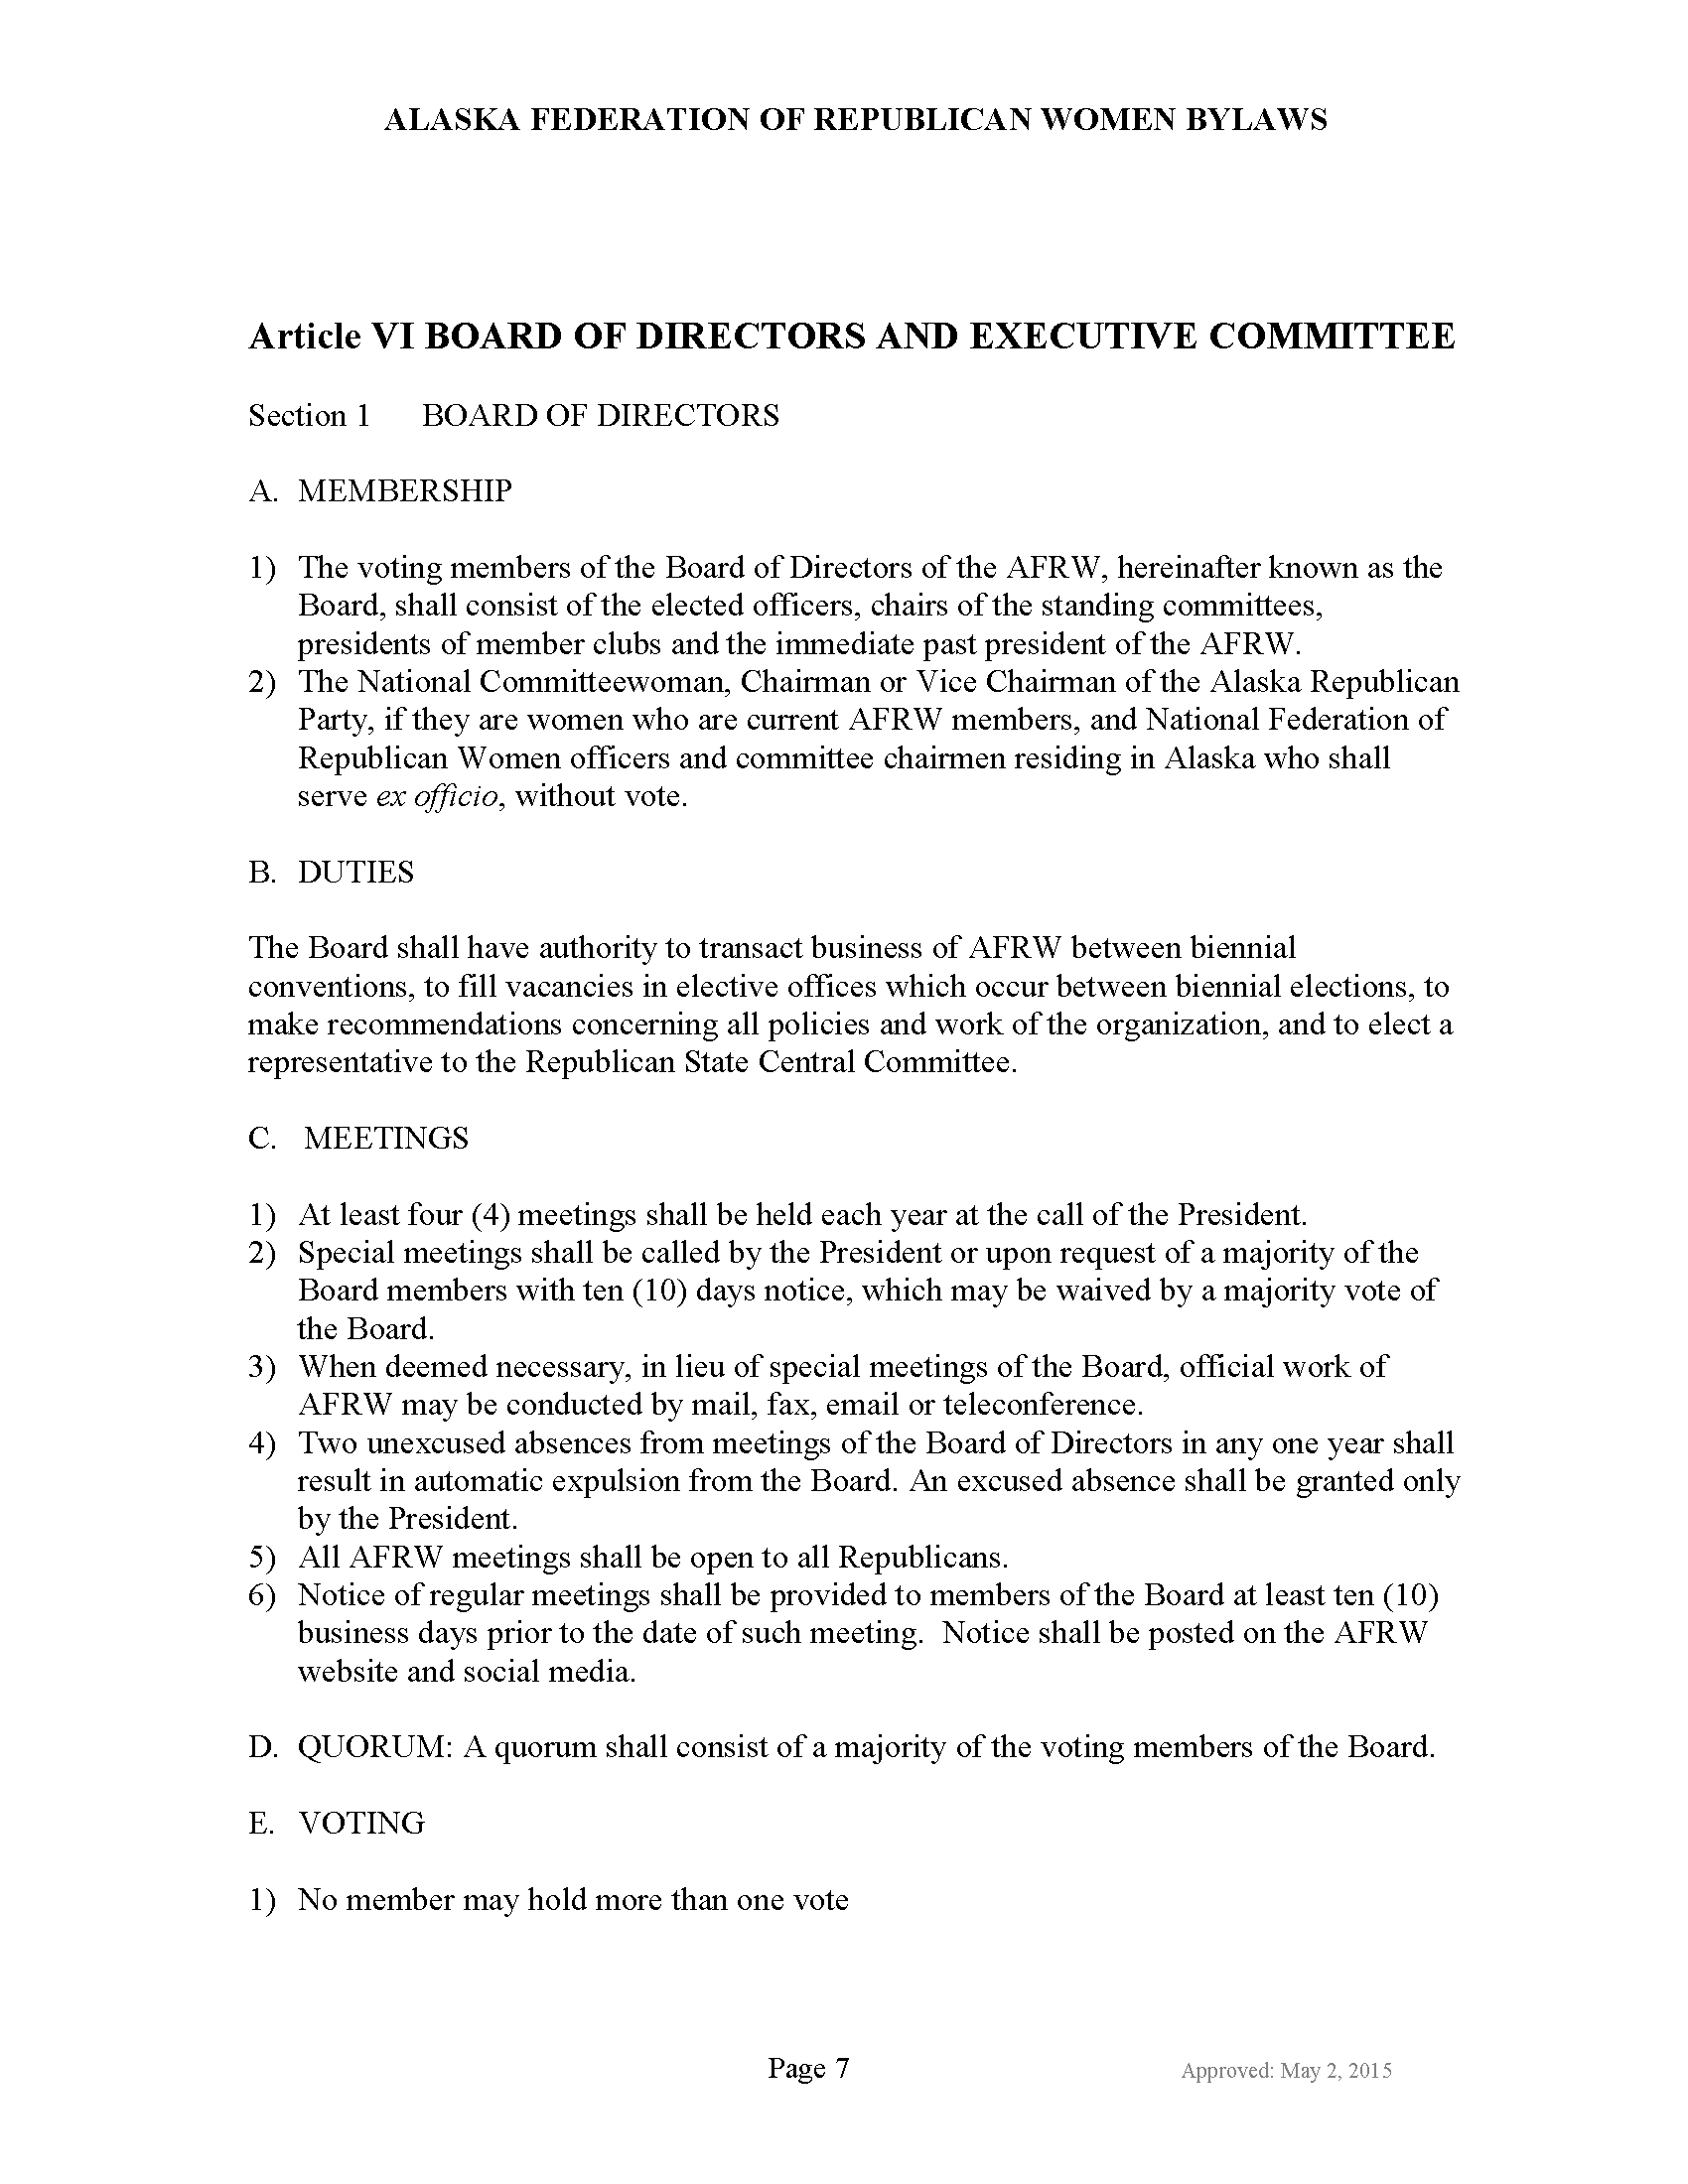 AFRW_Bylaws_ARWC_Approved_May_2__2015__(1)_Page_07.png